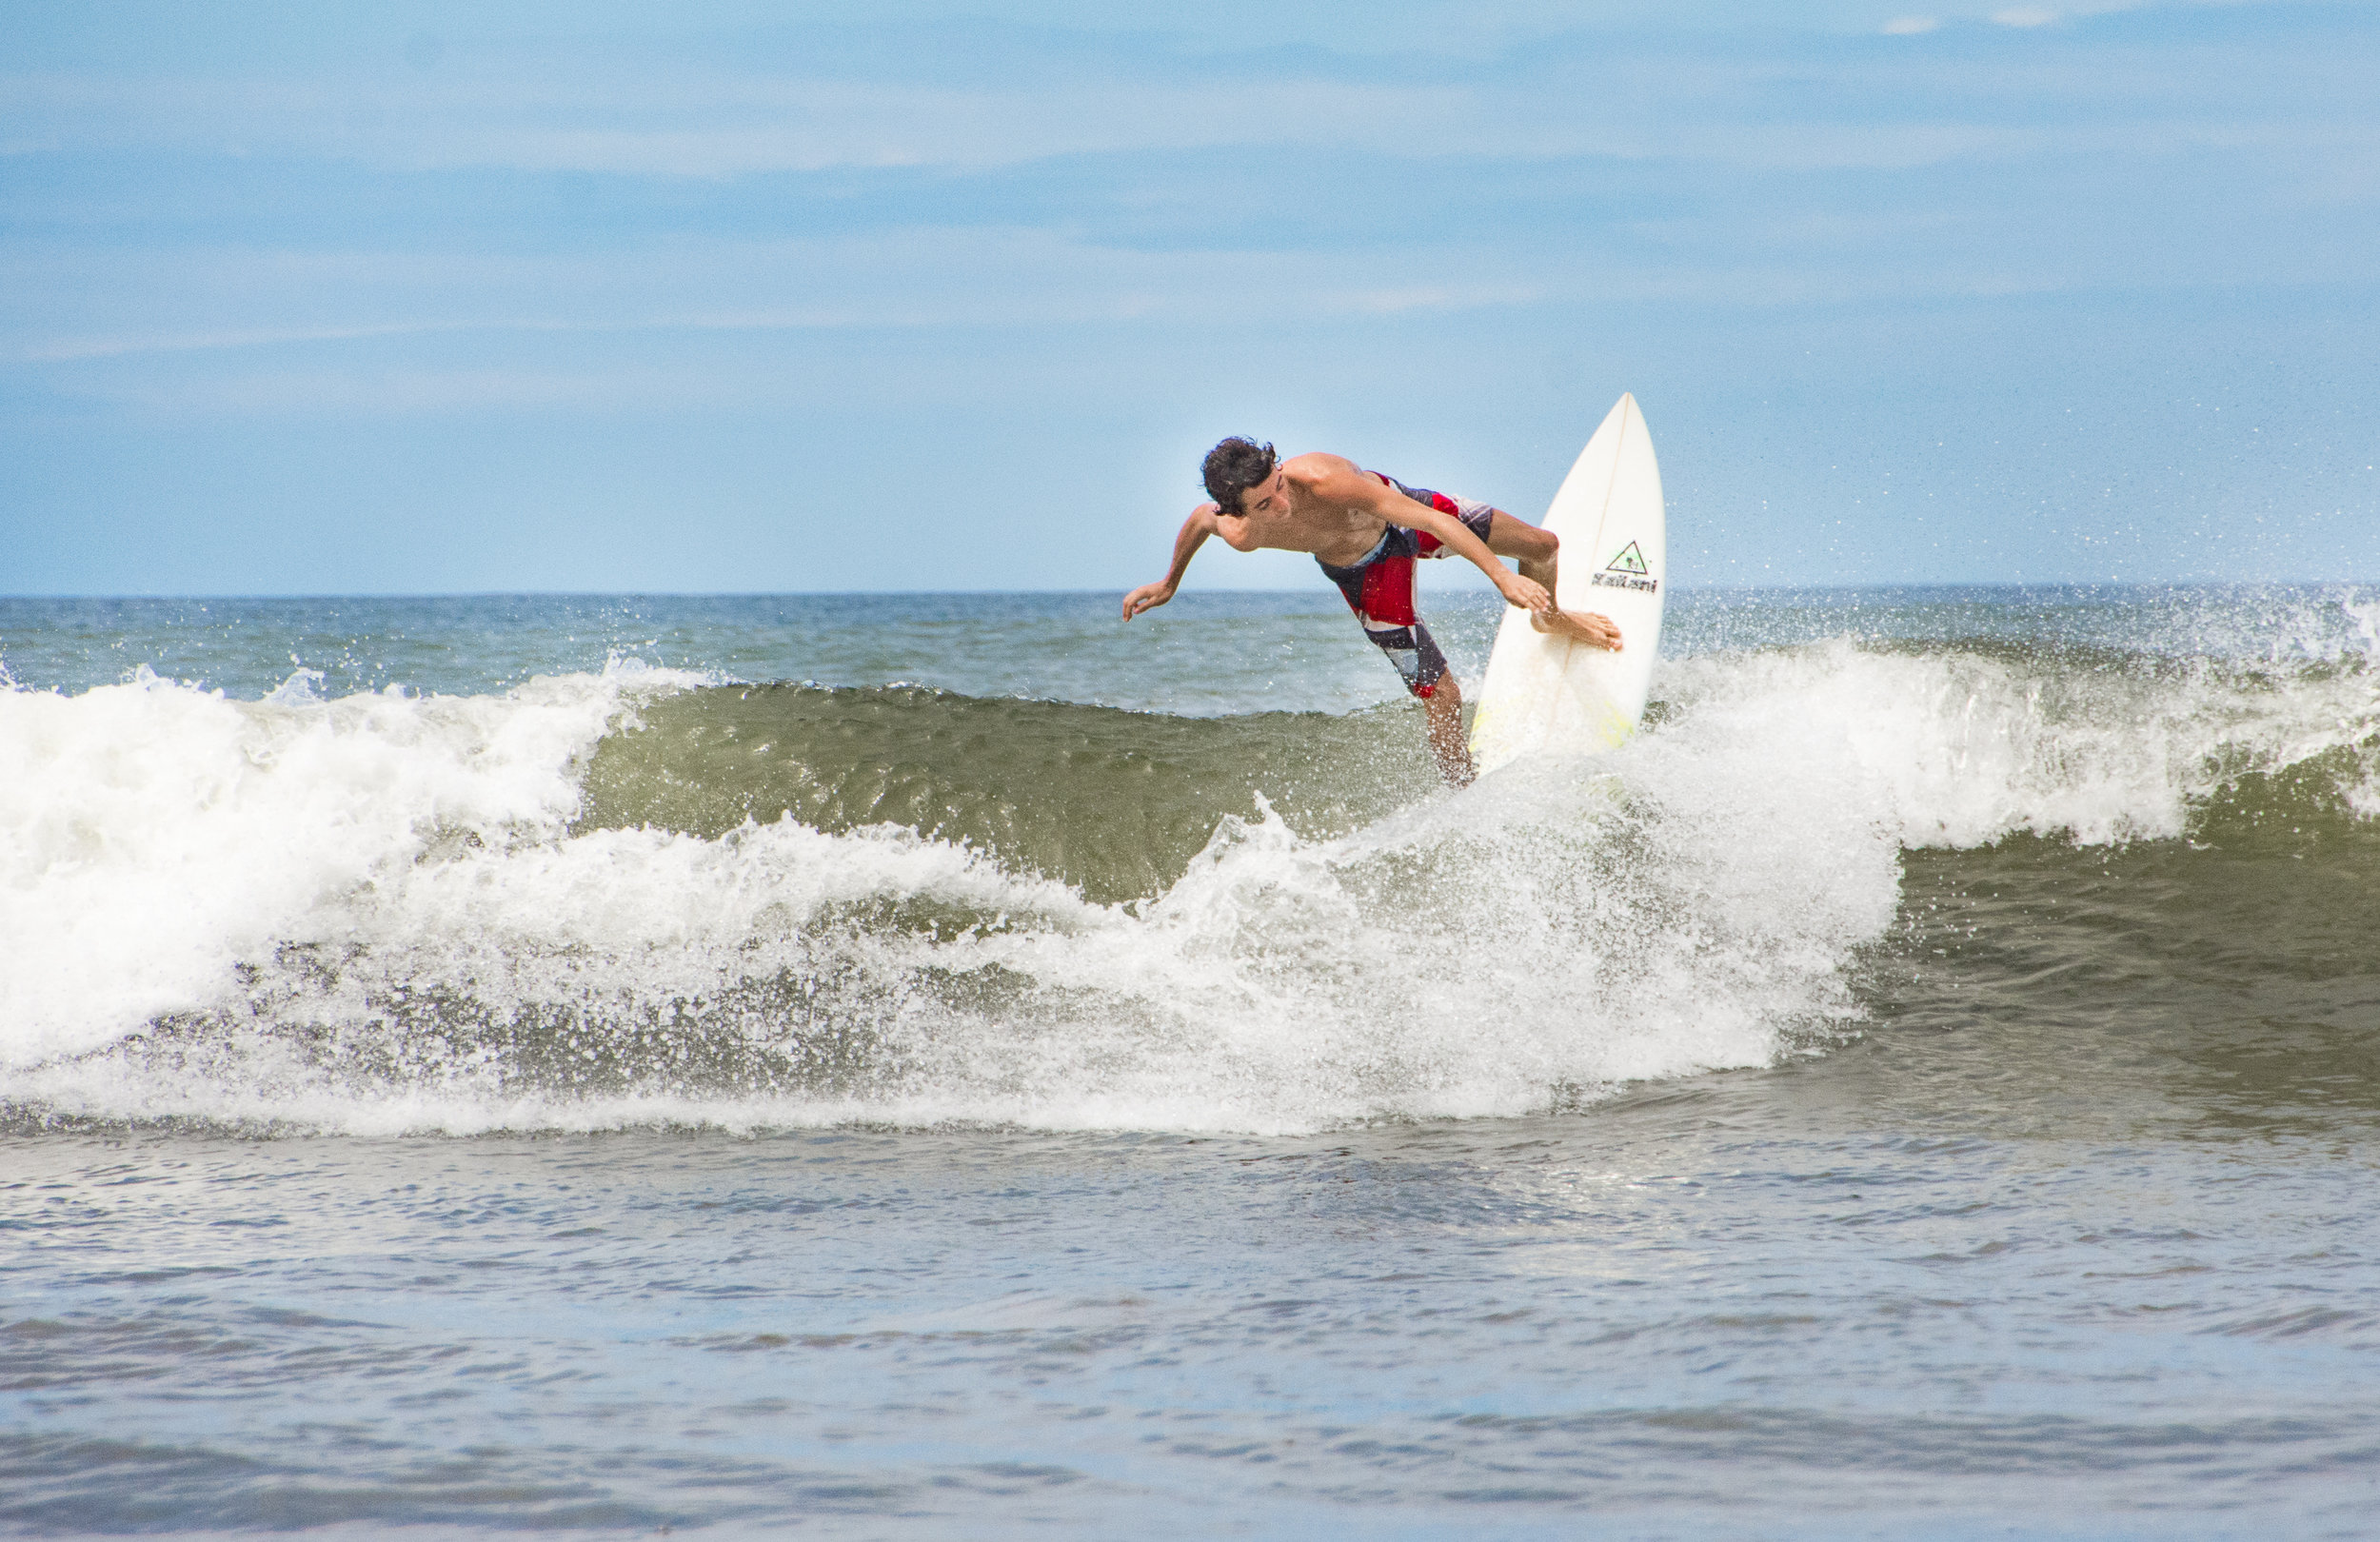 Going off the lip at Playa Hermosa, Costa Rica, 2017.